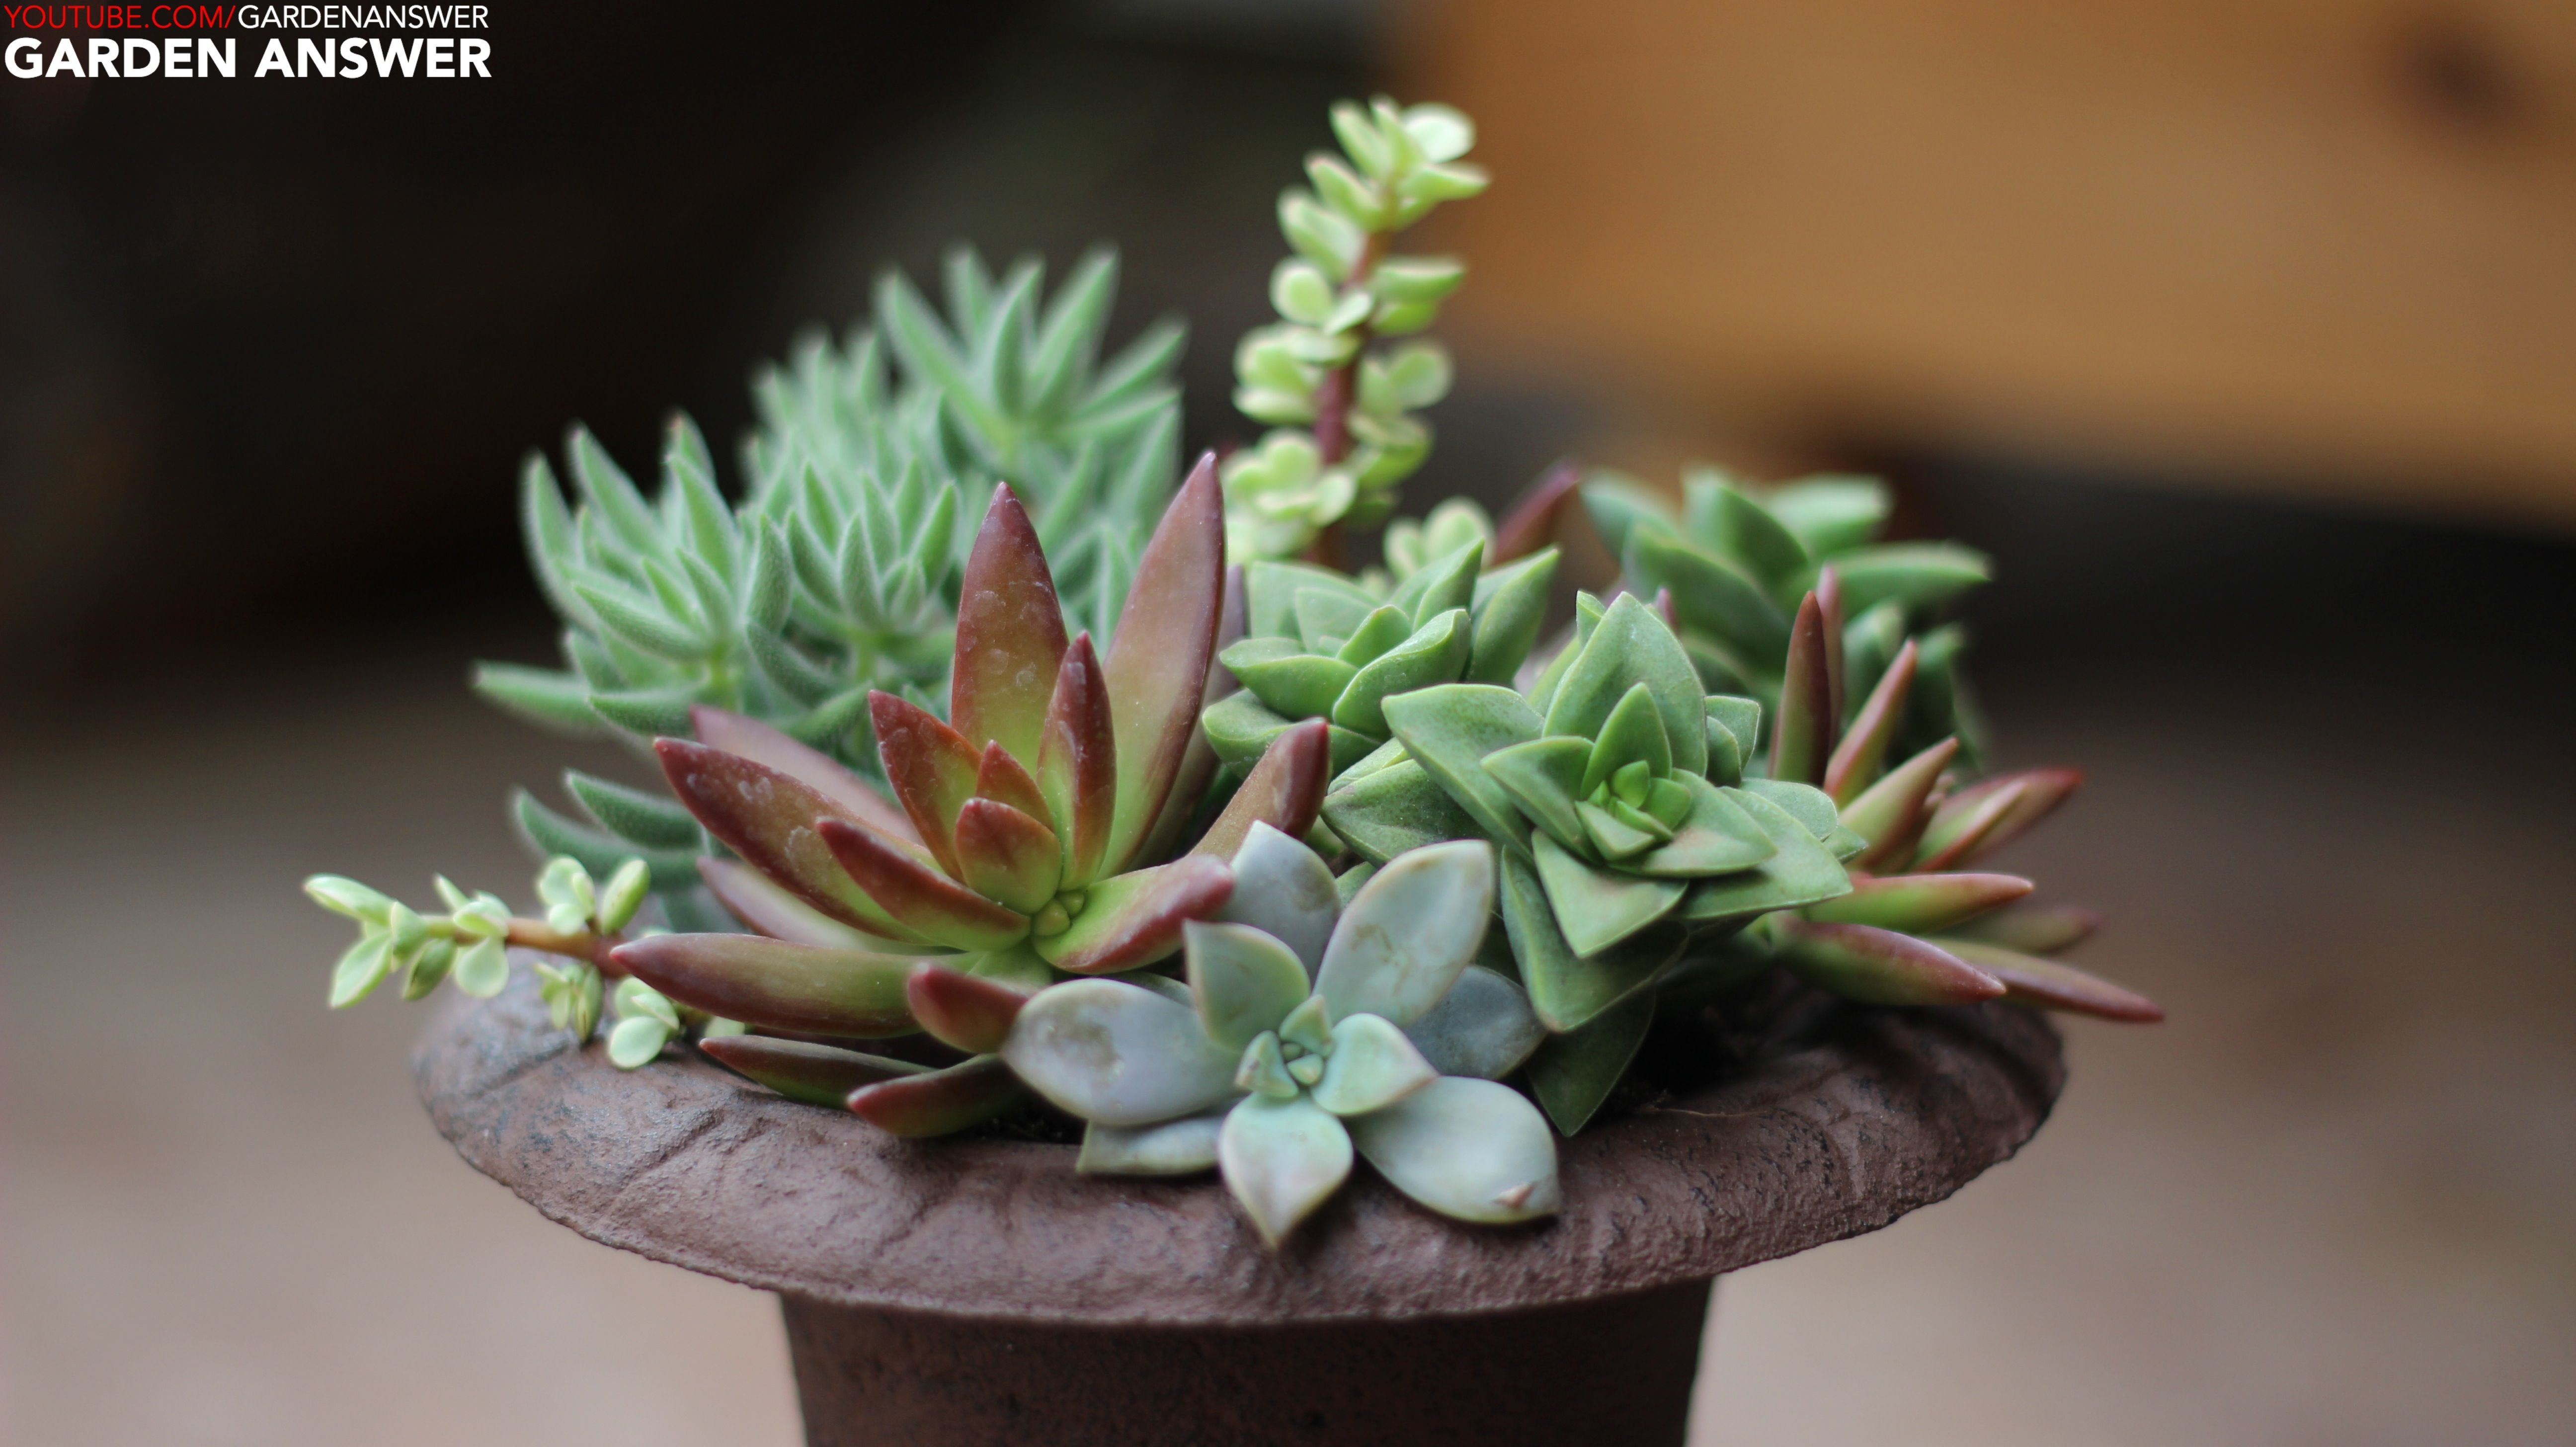 Succulent Urn I Love This Combo Www Youtube Com Gardenanswer Www